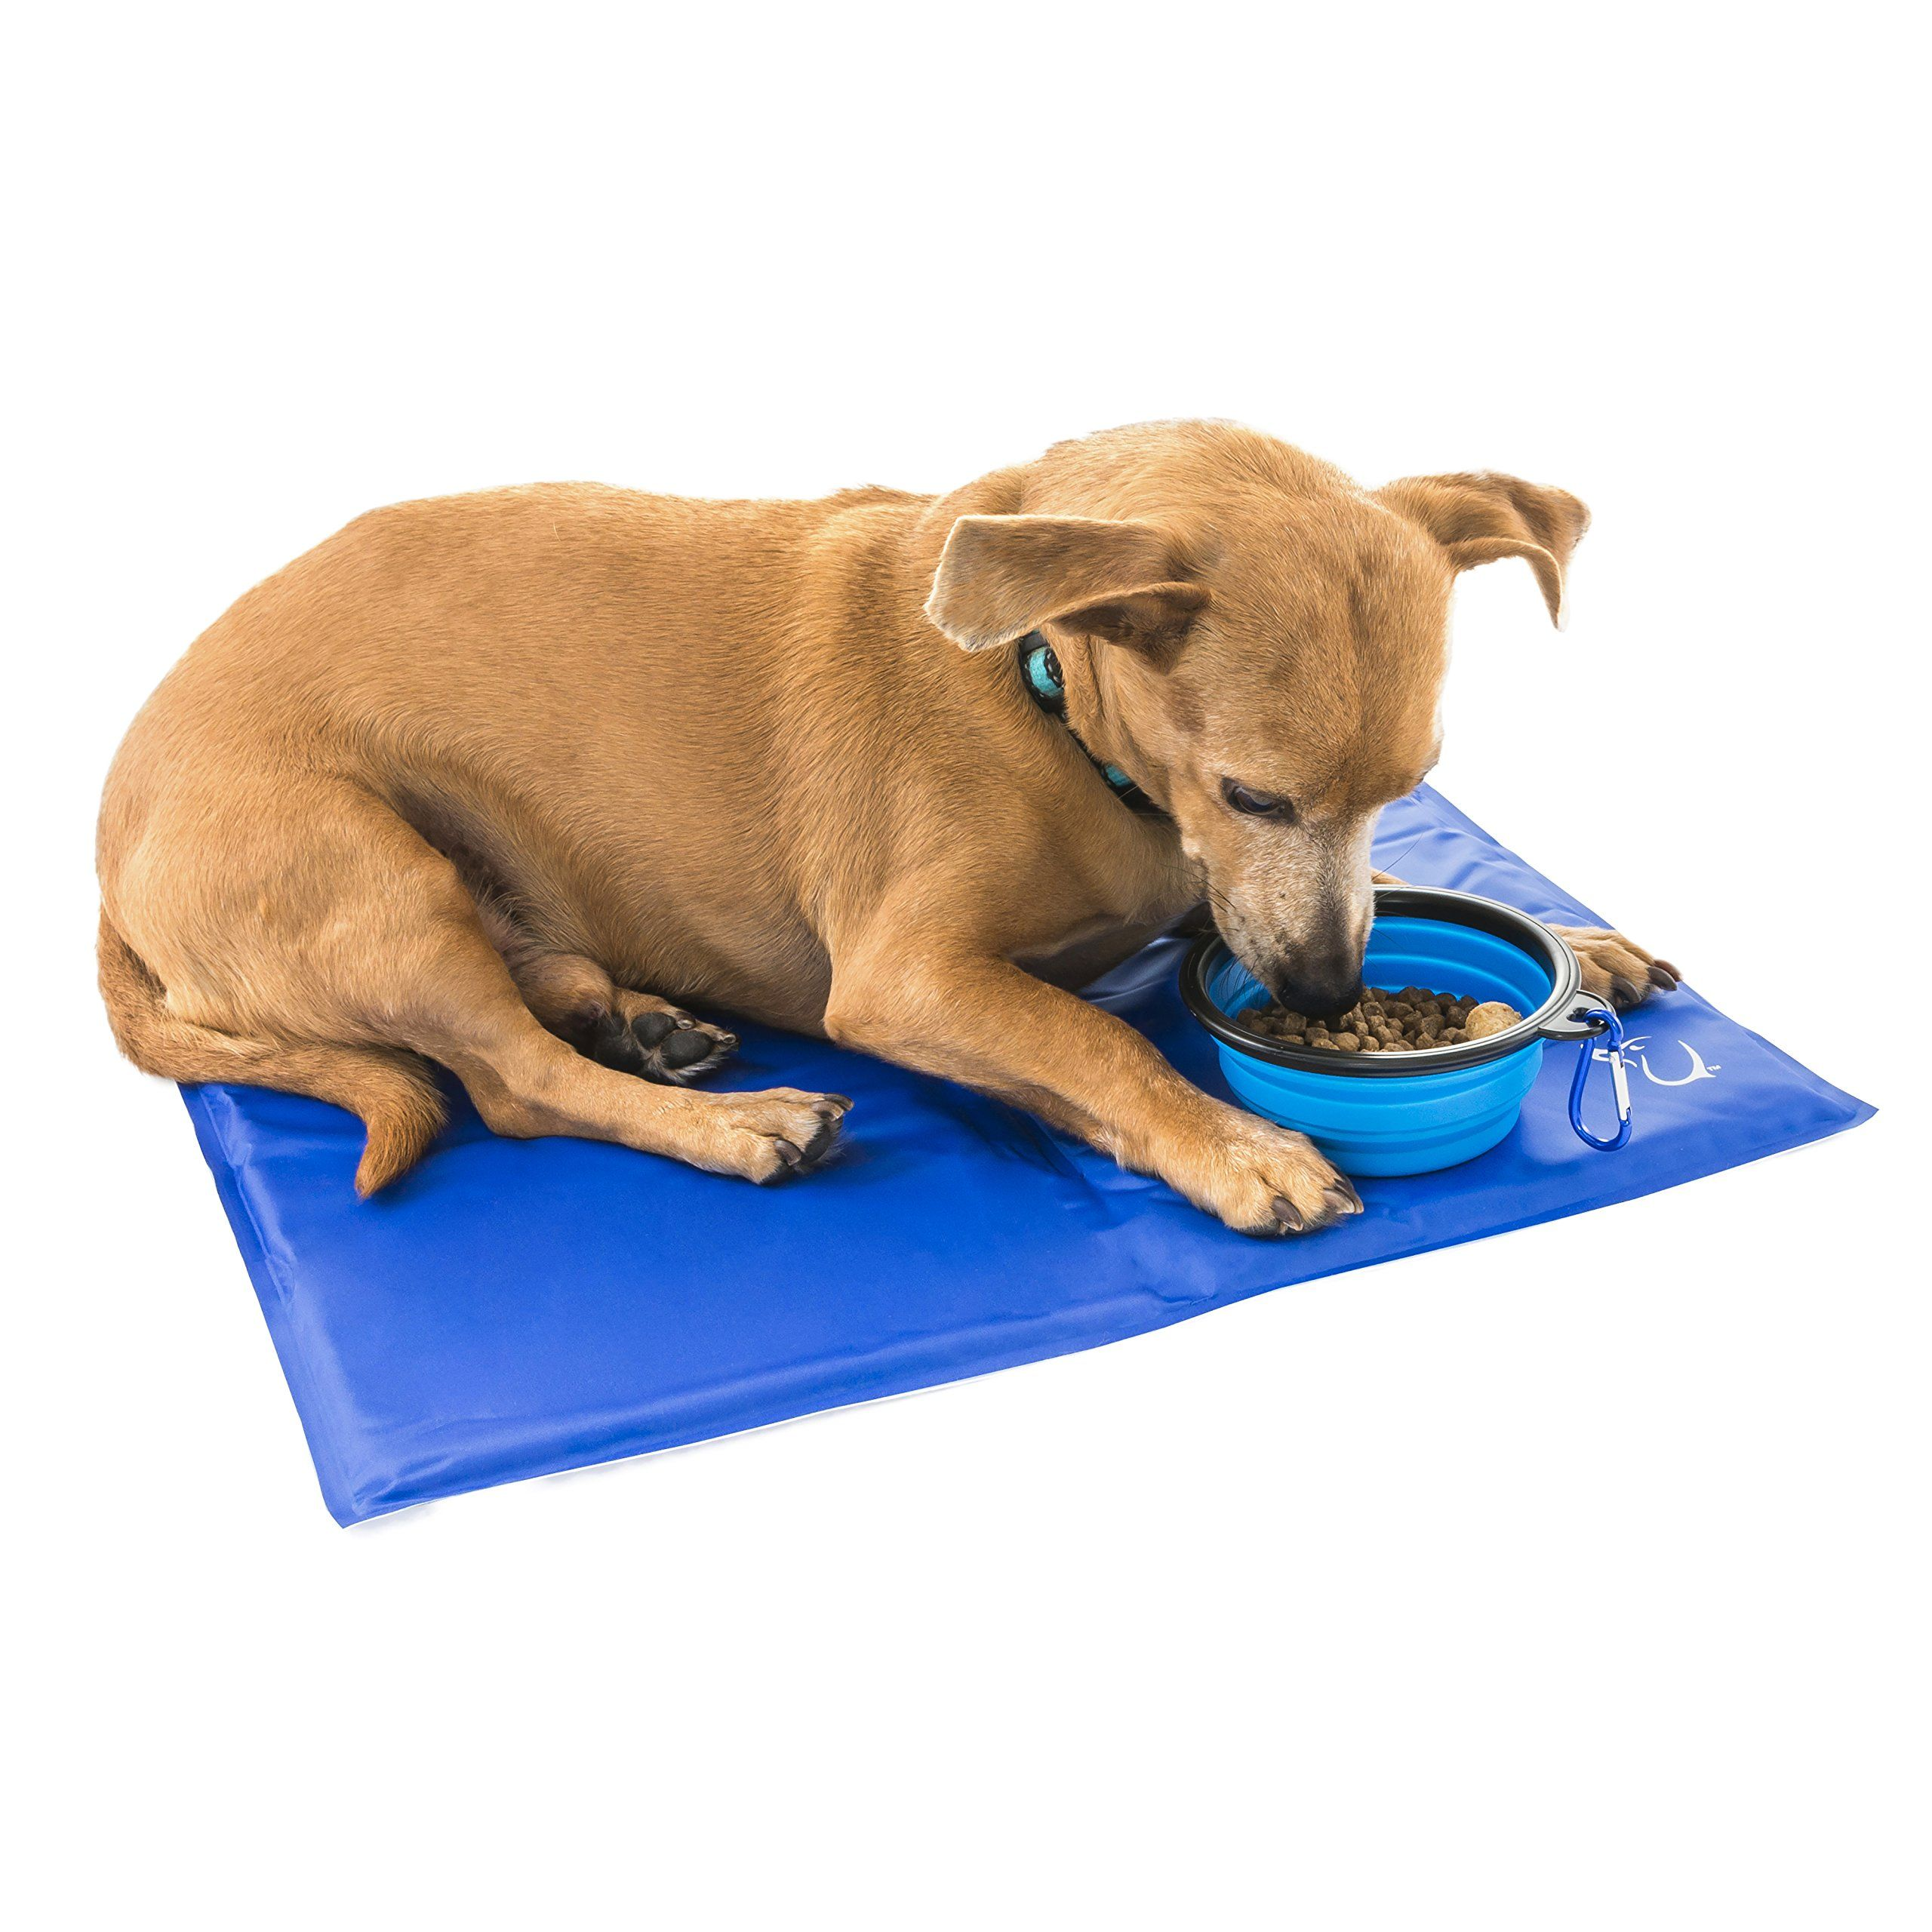 Unleashed Pets Self Cooling Pressure Activated Pet Cooling Gel Pad Mat Collapsible Food Bowl For Dogs Cats All Pets Nontoxic Cat Bed Pet Bed Cooling Gel Pad